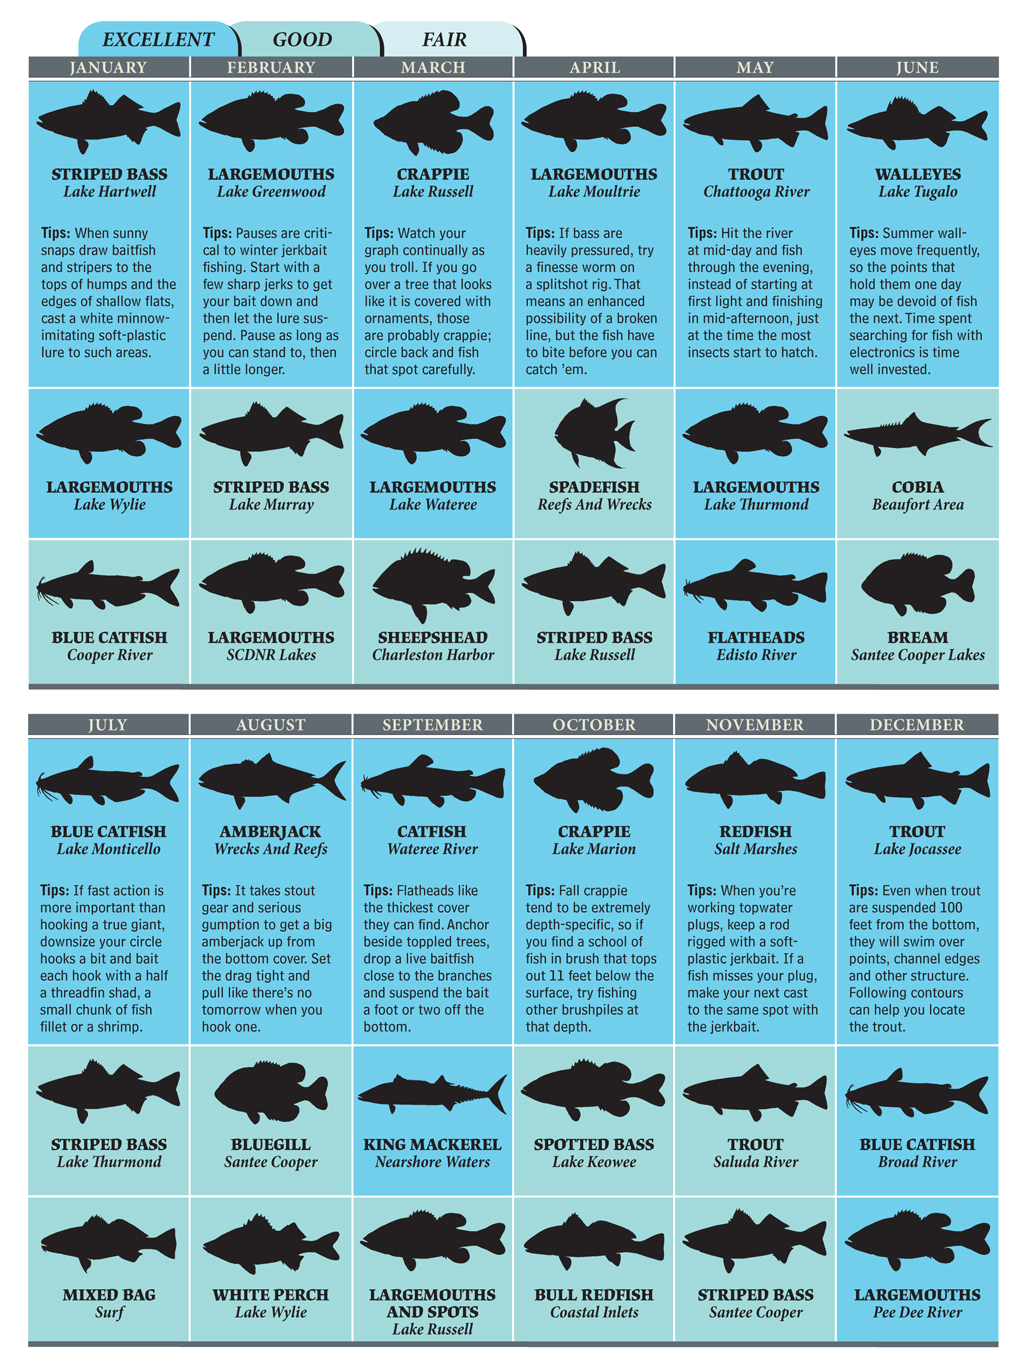 best bets for south carolina fishing in 2012 game fish